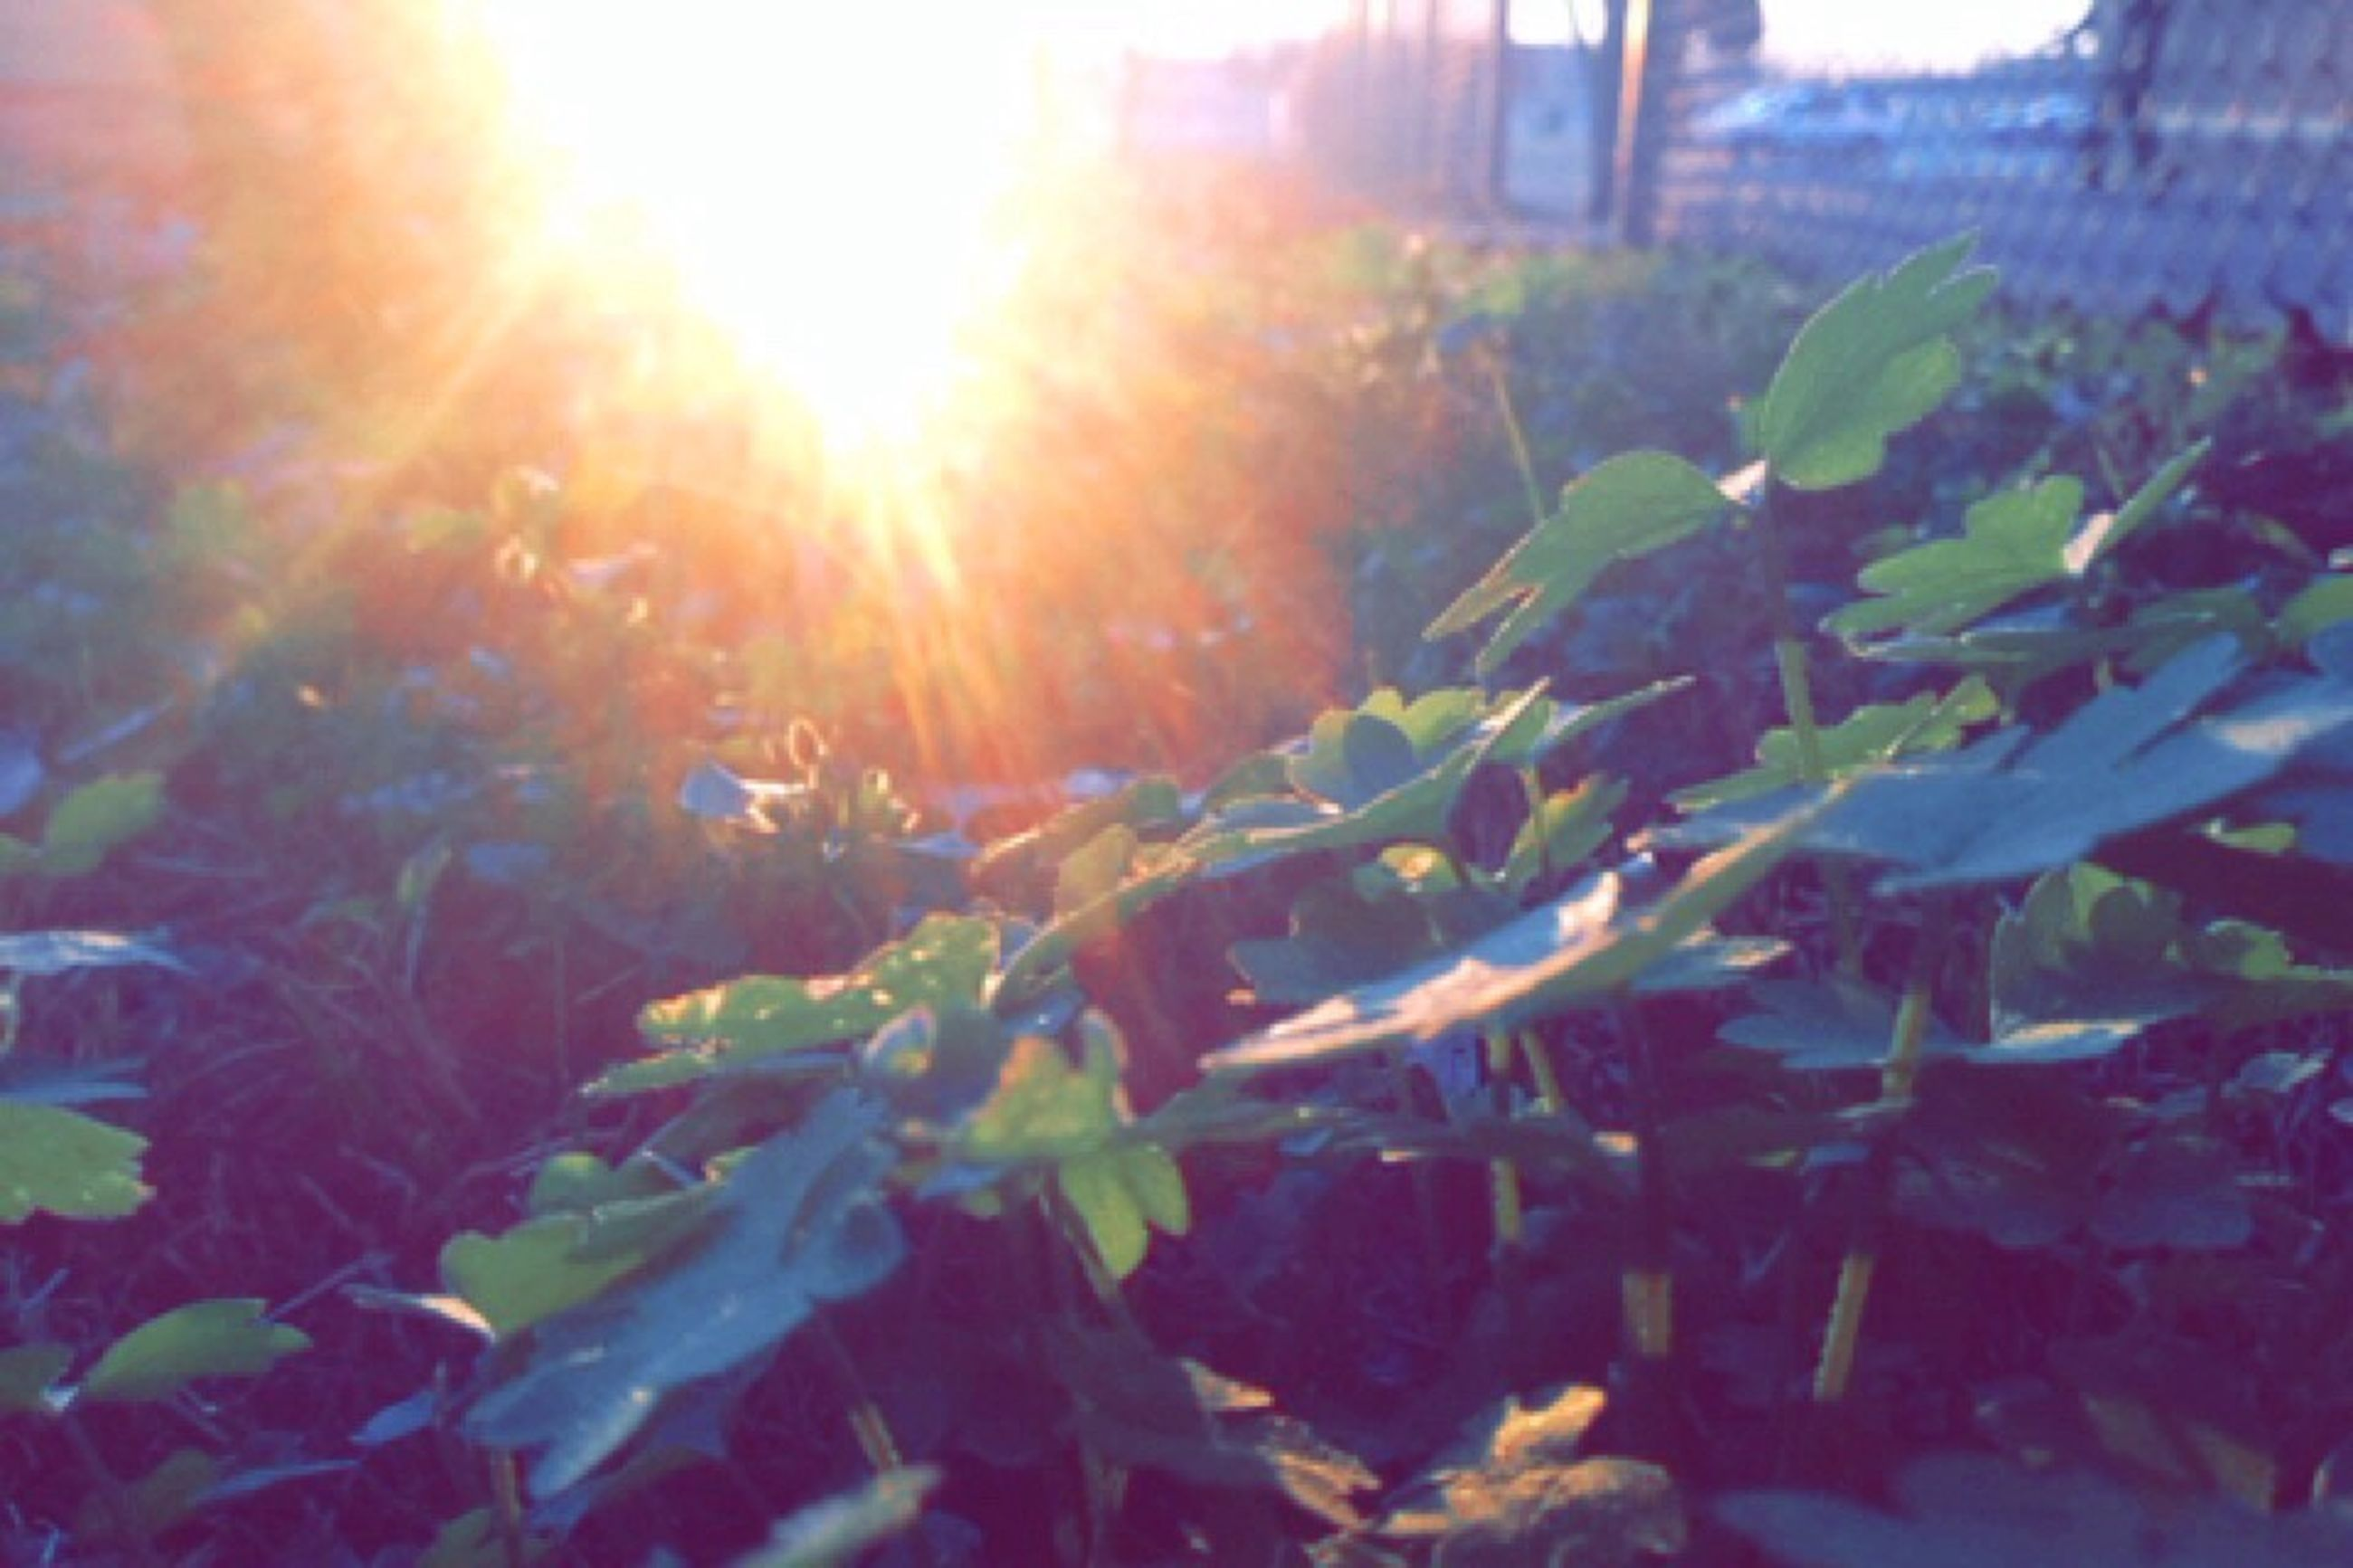 sun, sunbeam, leaf, growth, sunlight, lens flare, plant, nature, beauty in nature, tree, tranquility, green color, sunny, close-up, day, outdoors, growing, no people, focus on foreground, sunset